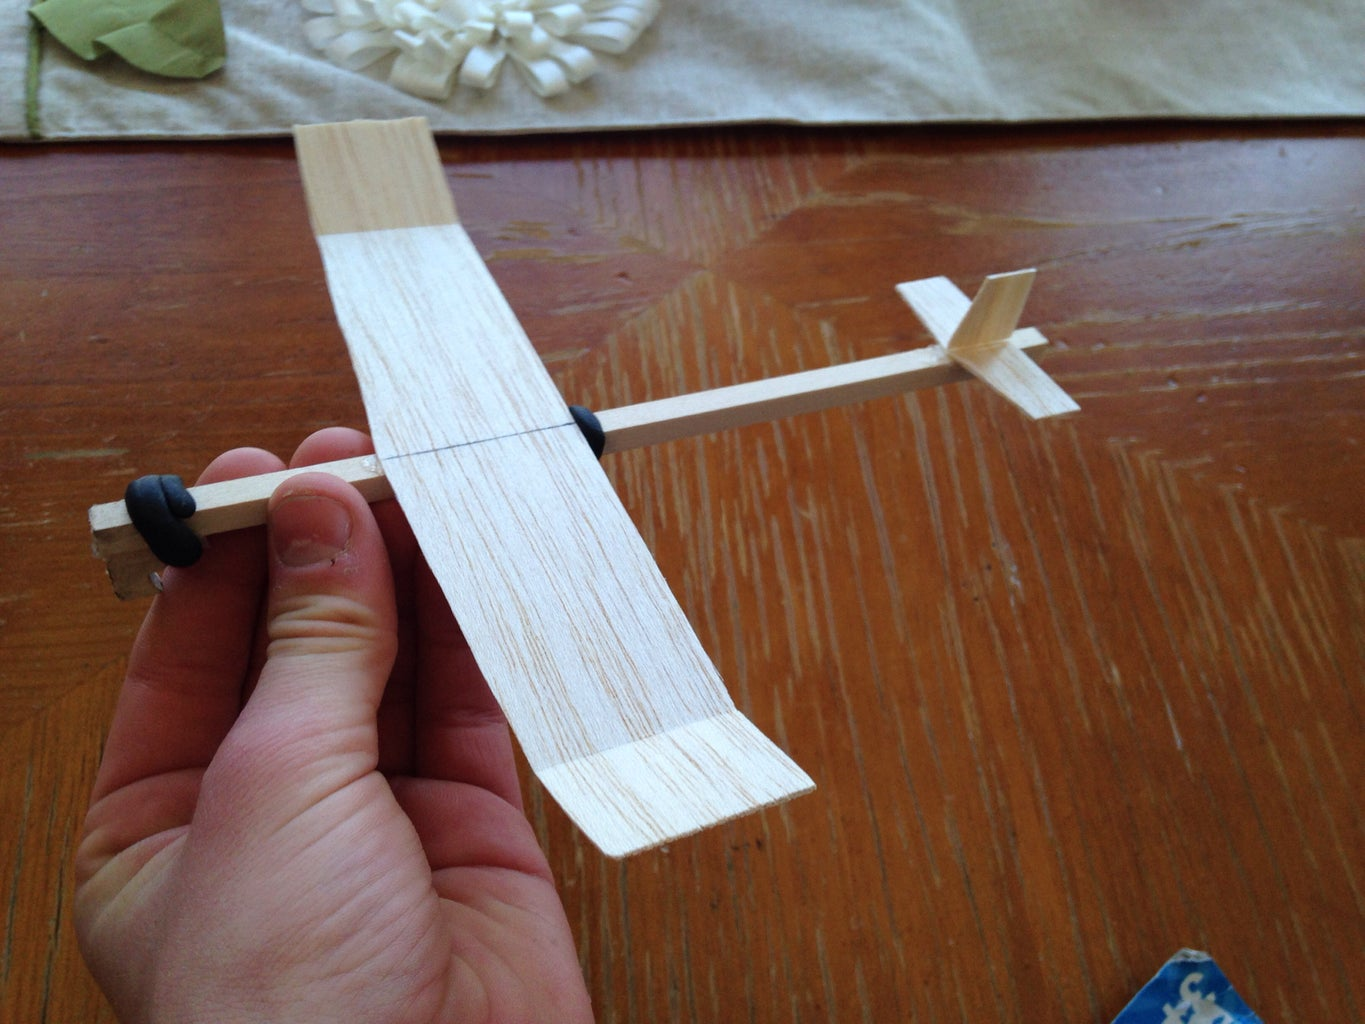 Now Glue the Stabilizers and Wings Onto the Fuselage